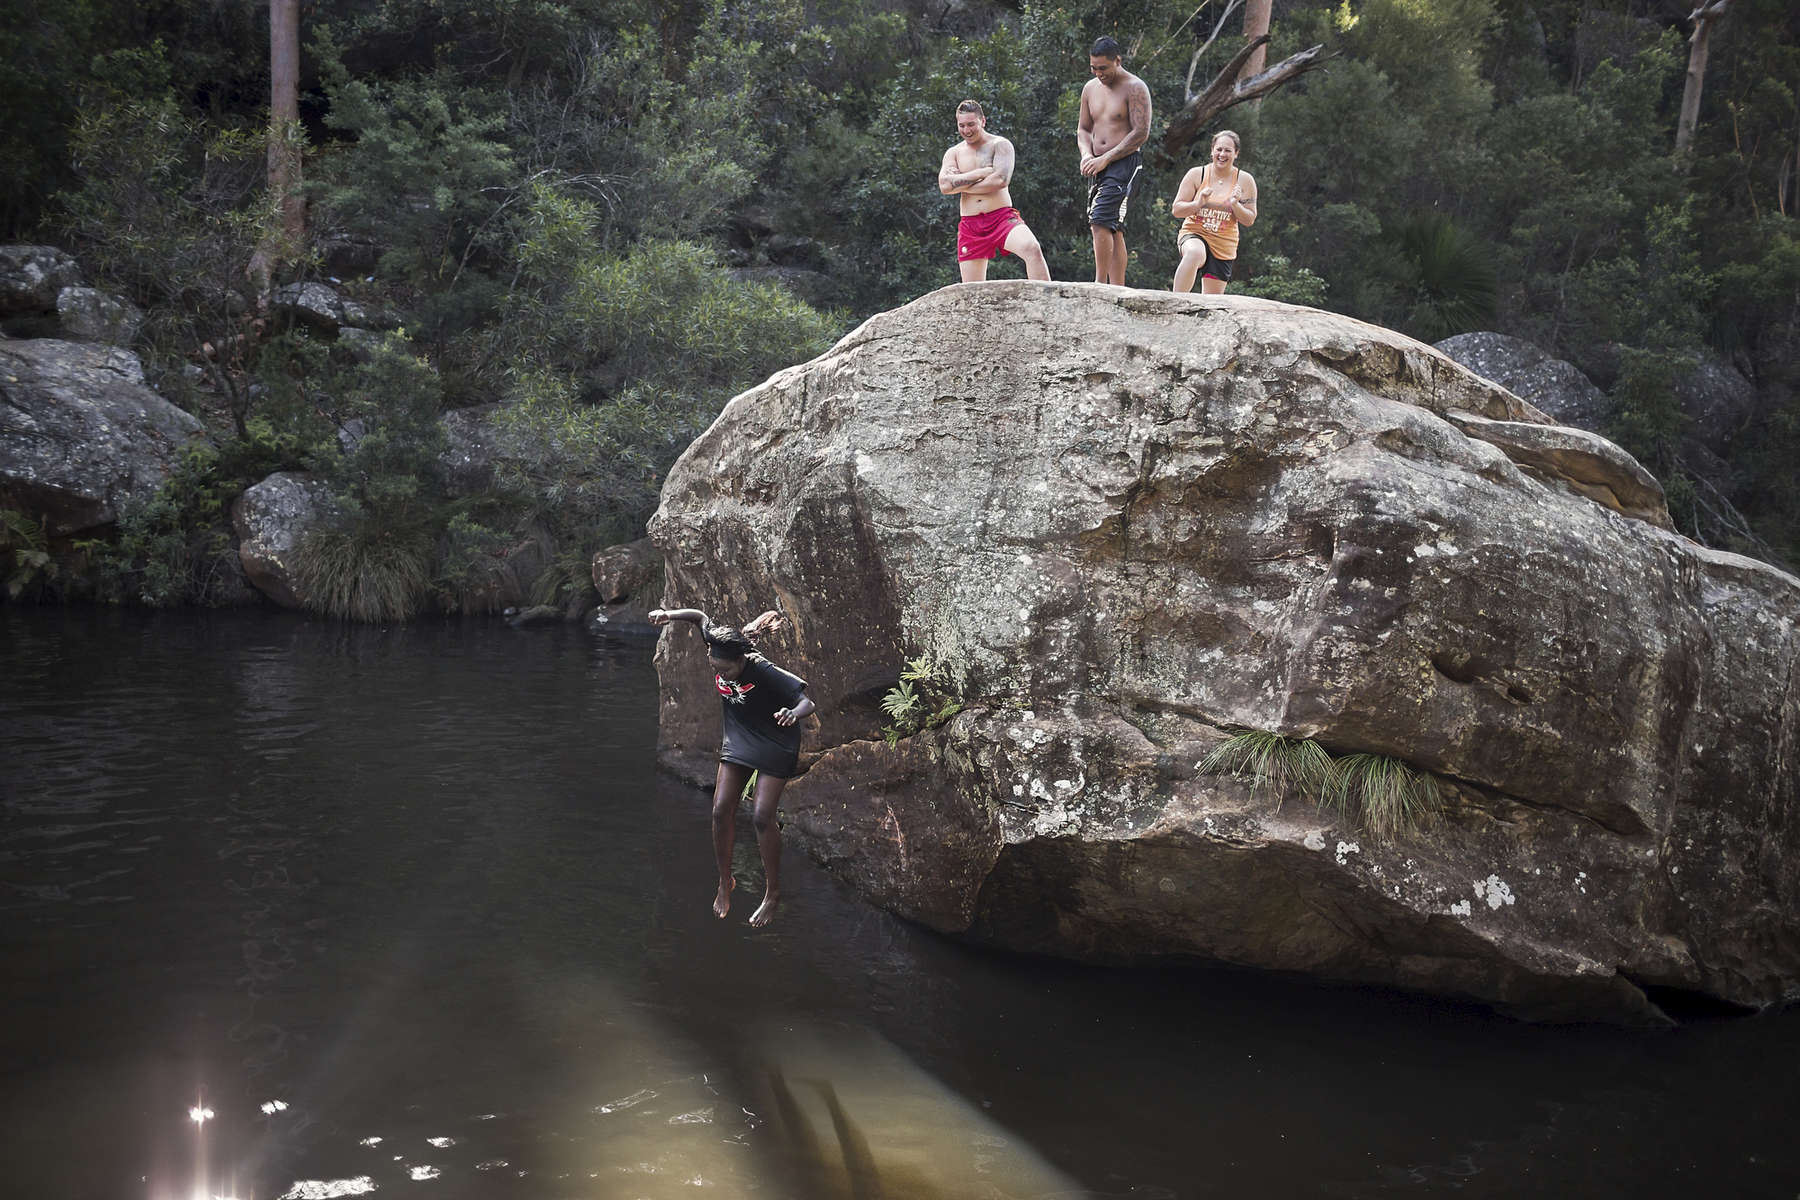 Outside Sydney at Jellybean pool in the Blue Mountains National Park, Achingol Mayom falls into the water after being pushed off a popular jump rock for taking too long. Achingol was part of a group of young Australian South Sudanese who participated in a cell phone photography project the photographer crowd funded to run in January 2015.